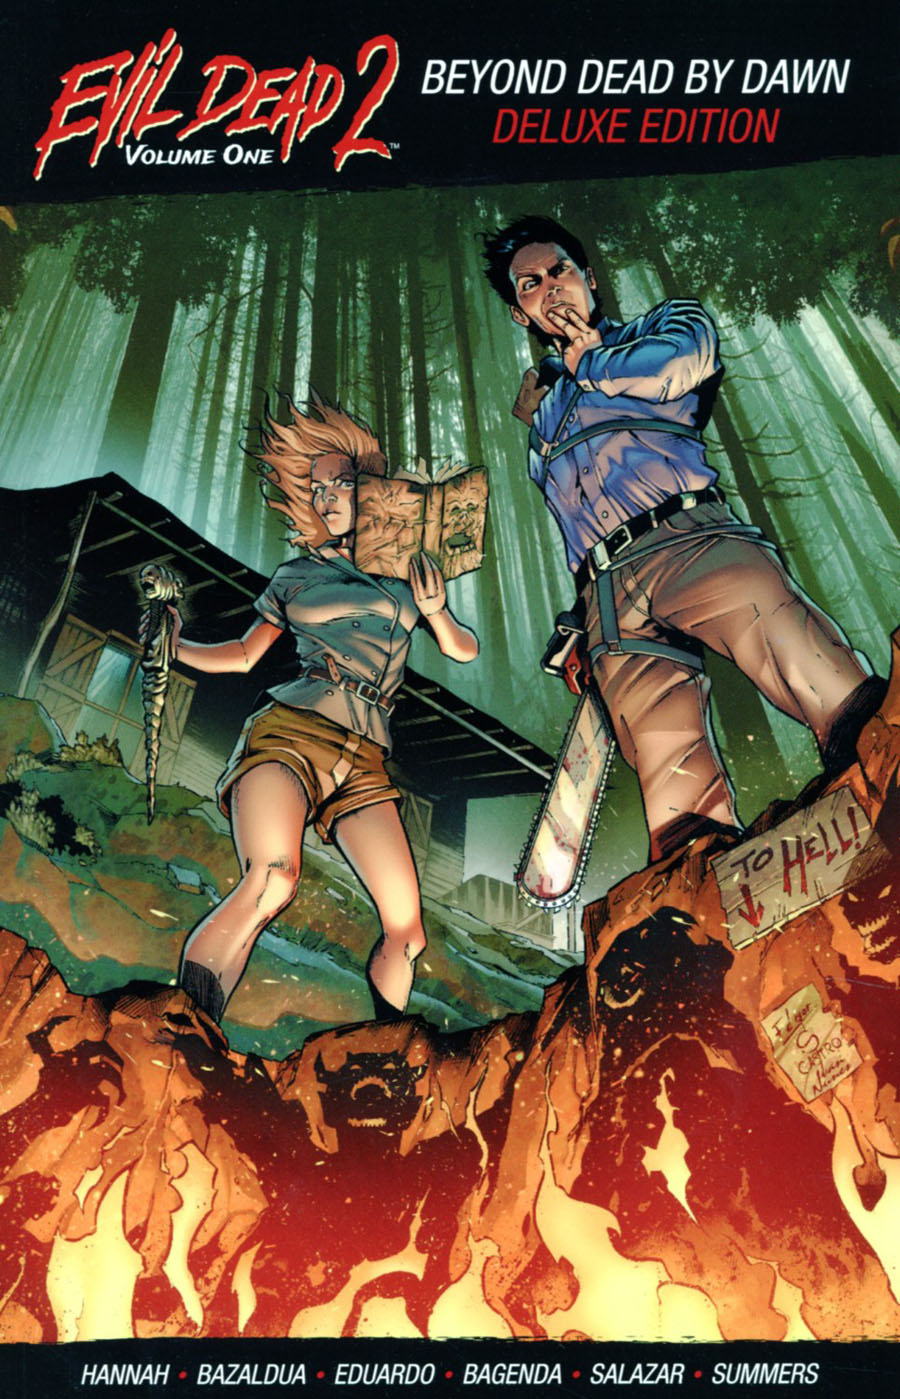 Evil Dead 2 Vol 1 Beyond Dead By Dawn TP Deluxe Edition